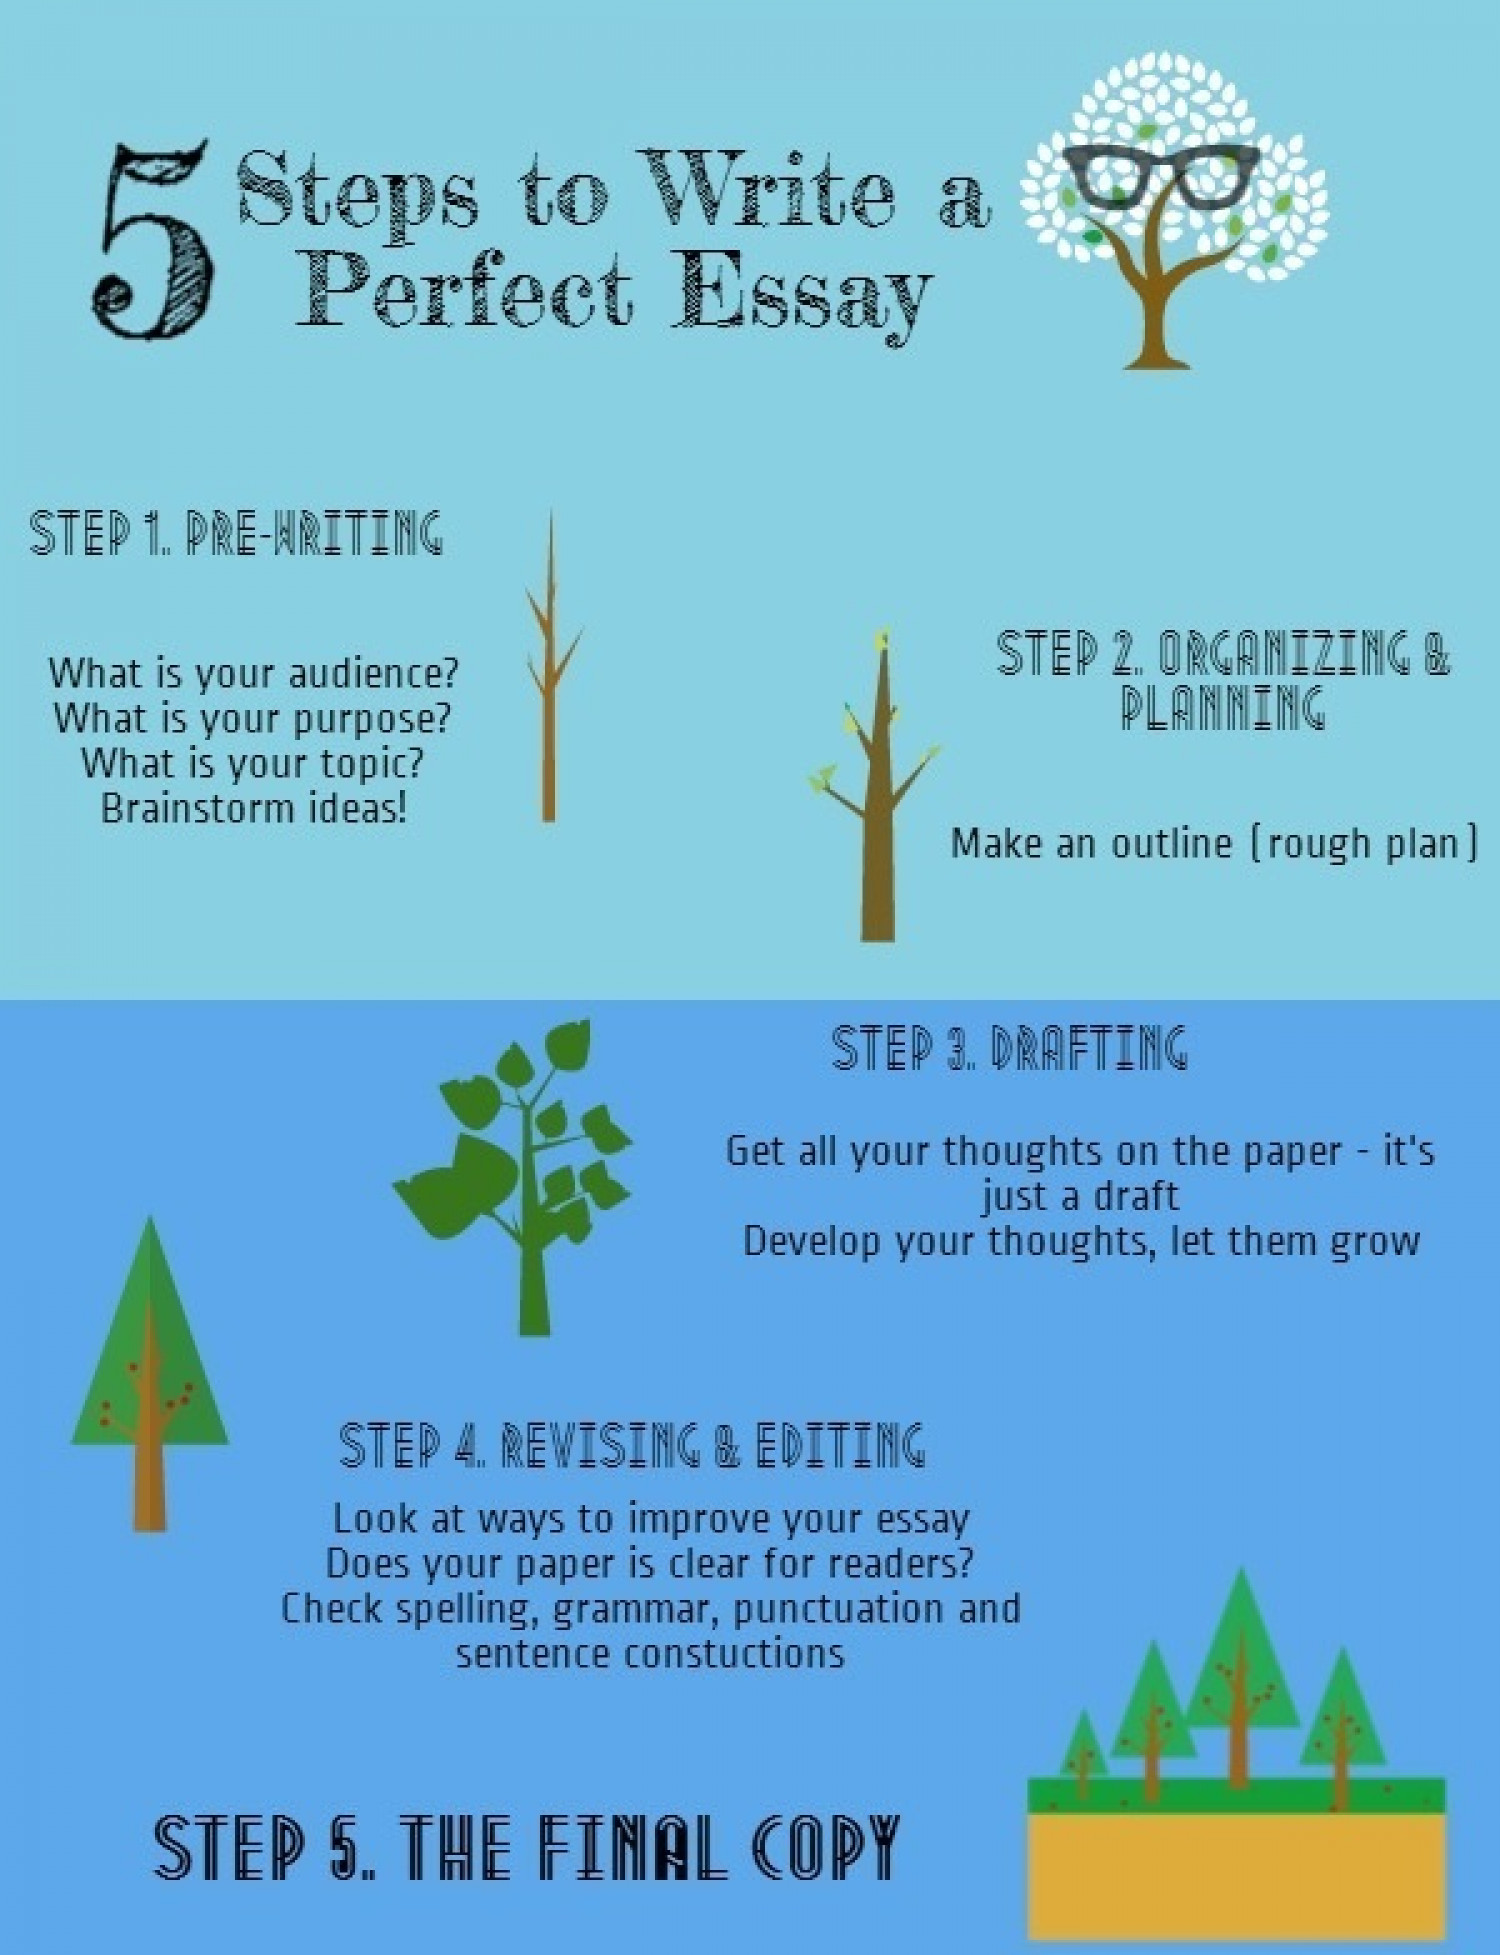 how to write a successful research paper How to write a successful research paper - best hq writing services provided by top professionals stop receiving bad marks with these custom dissertation tips all.